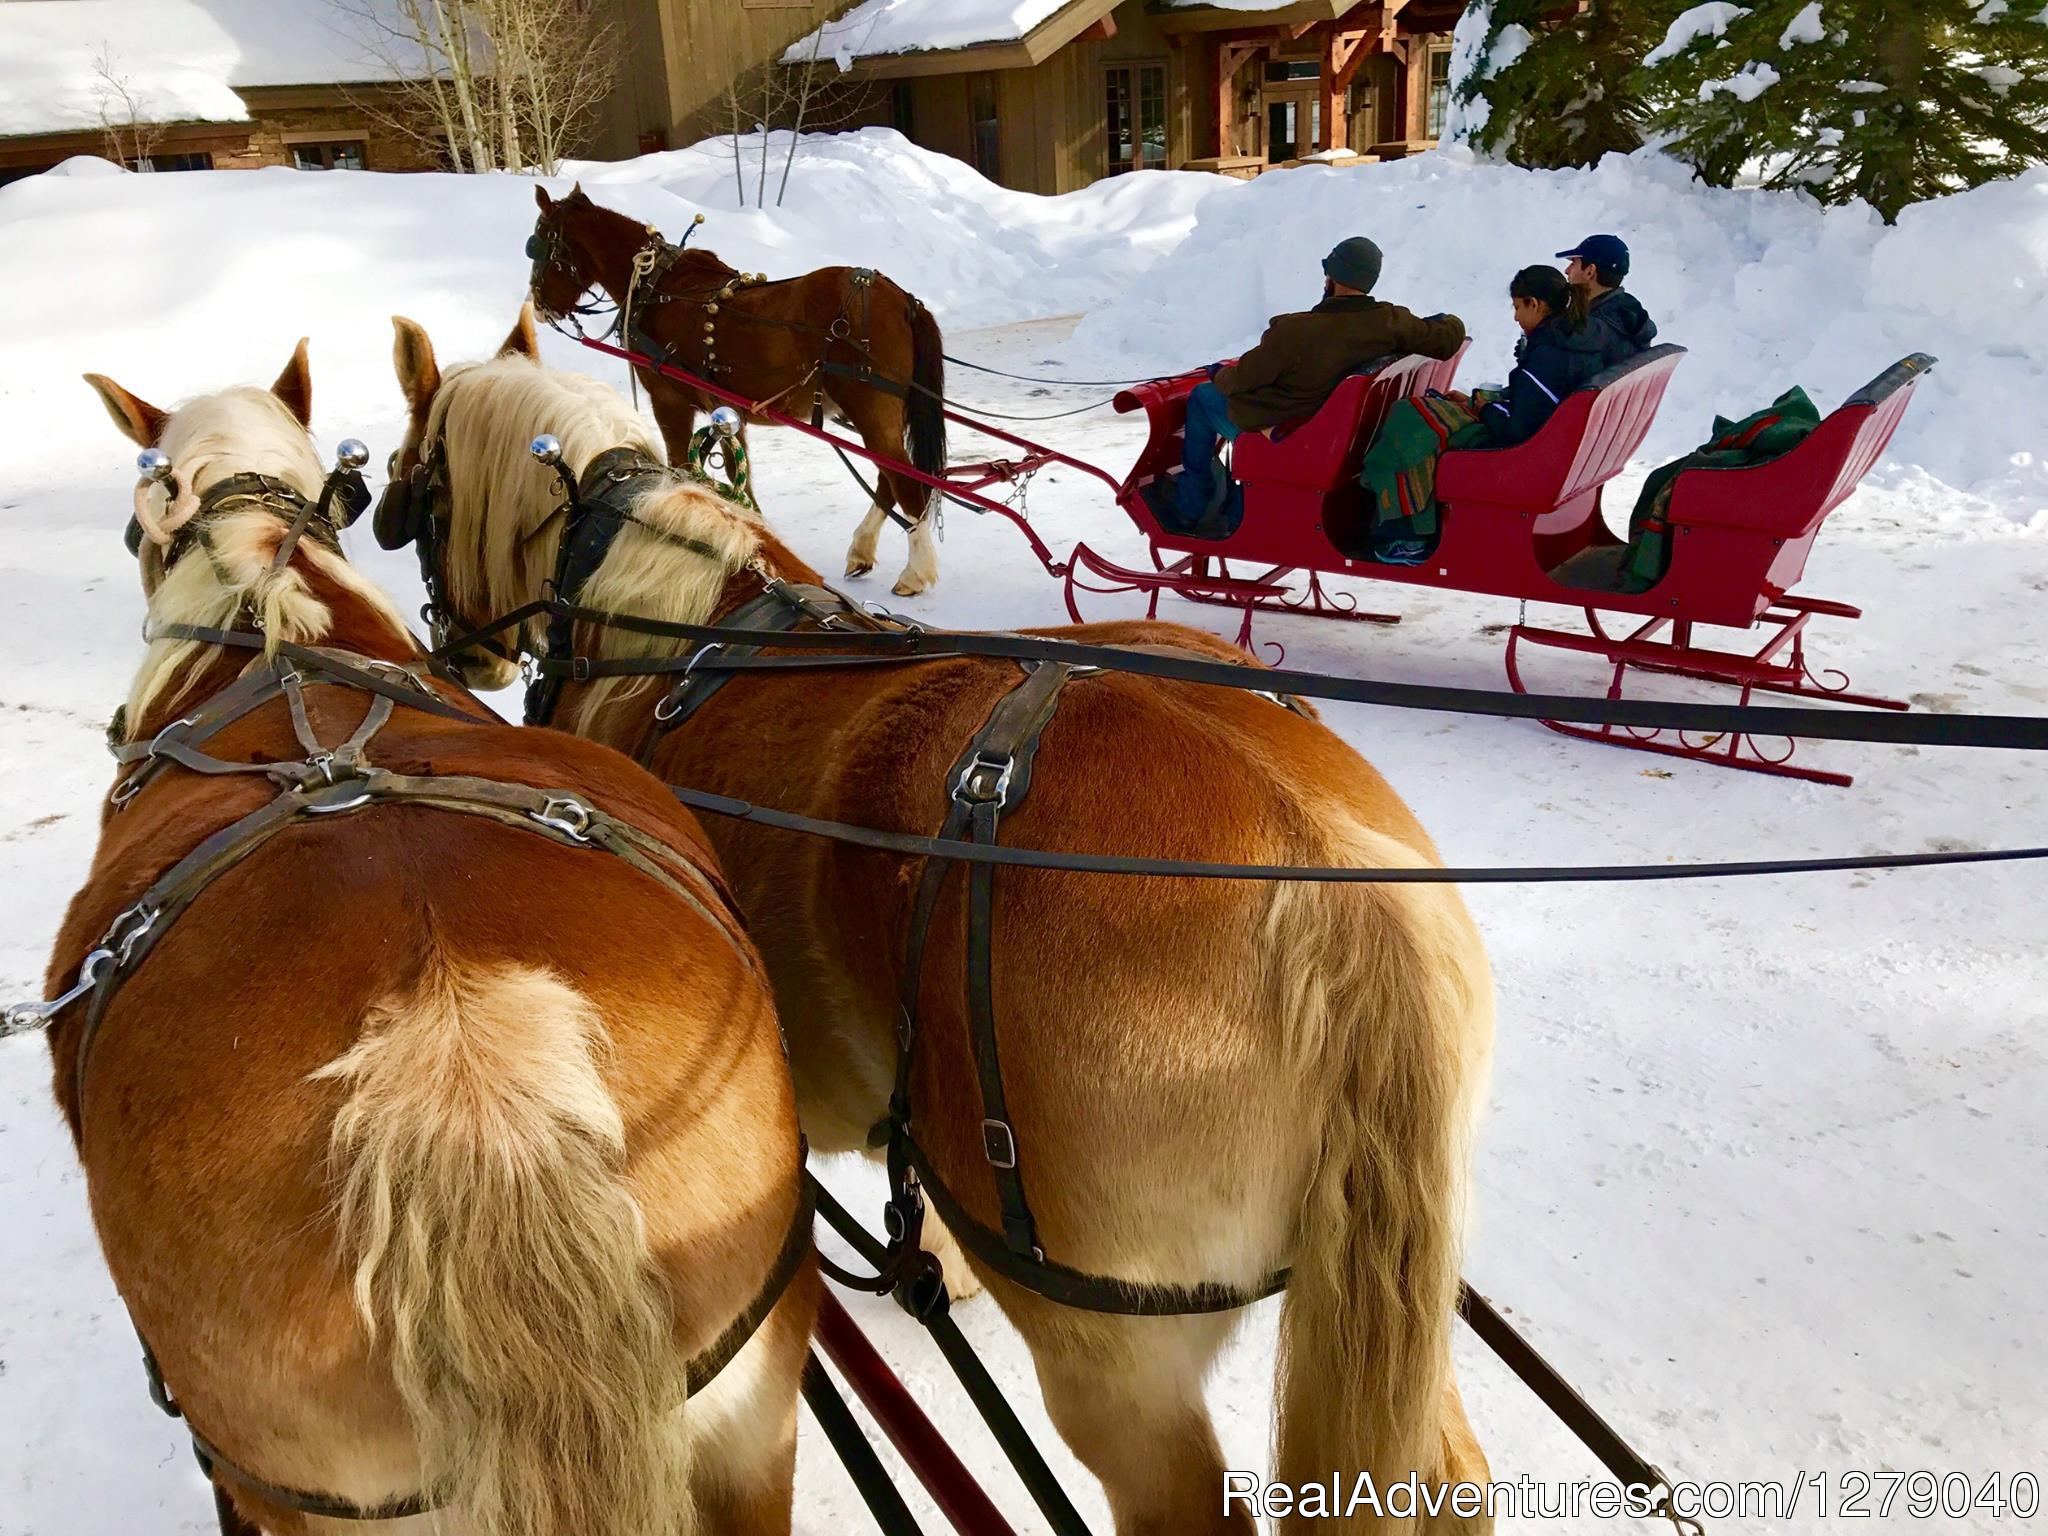 Sleigh rides, sking, tubing and more winter fun | Image #10/10 | Vista Verde Guest Ranch